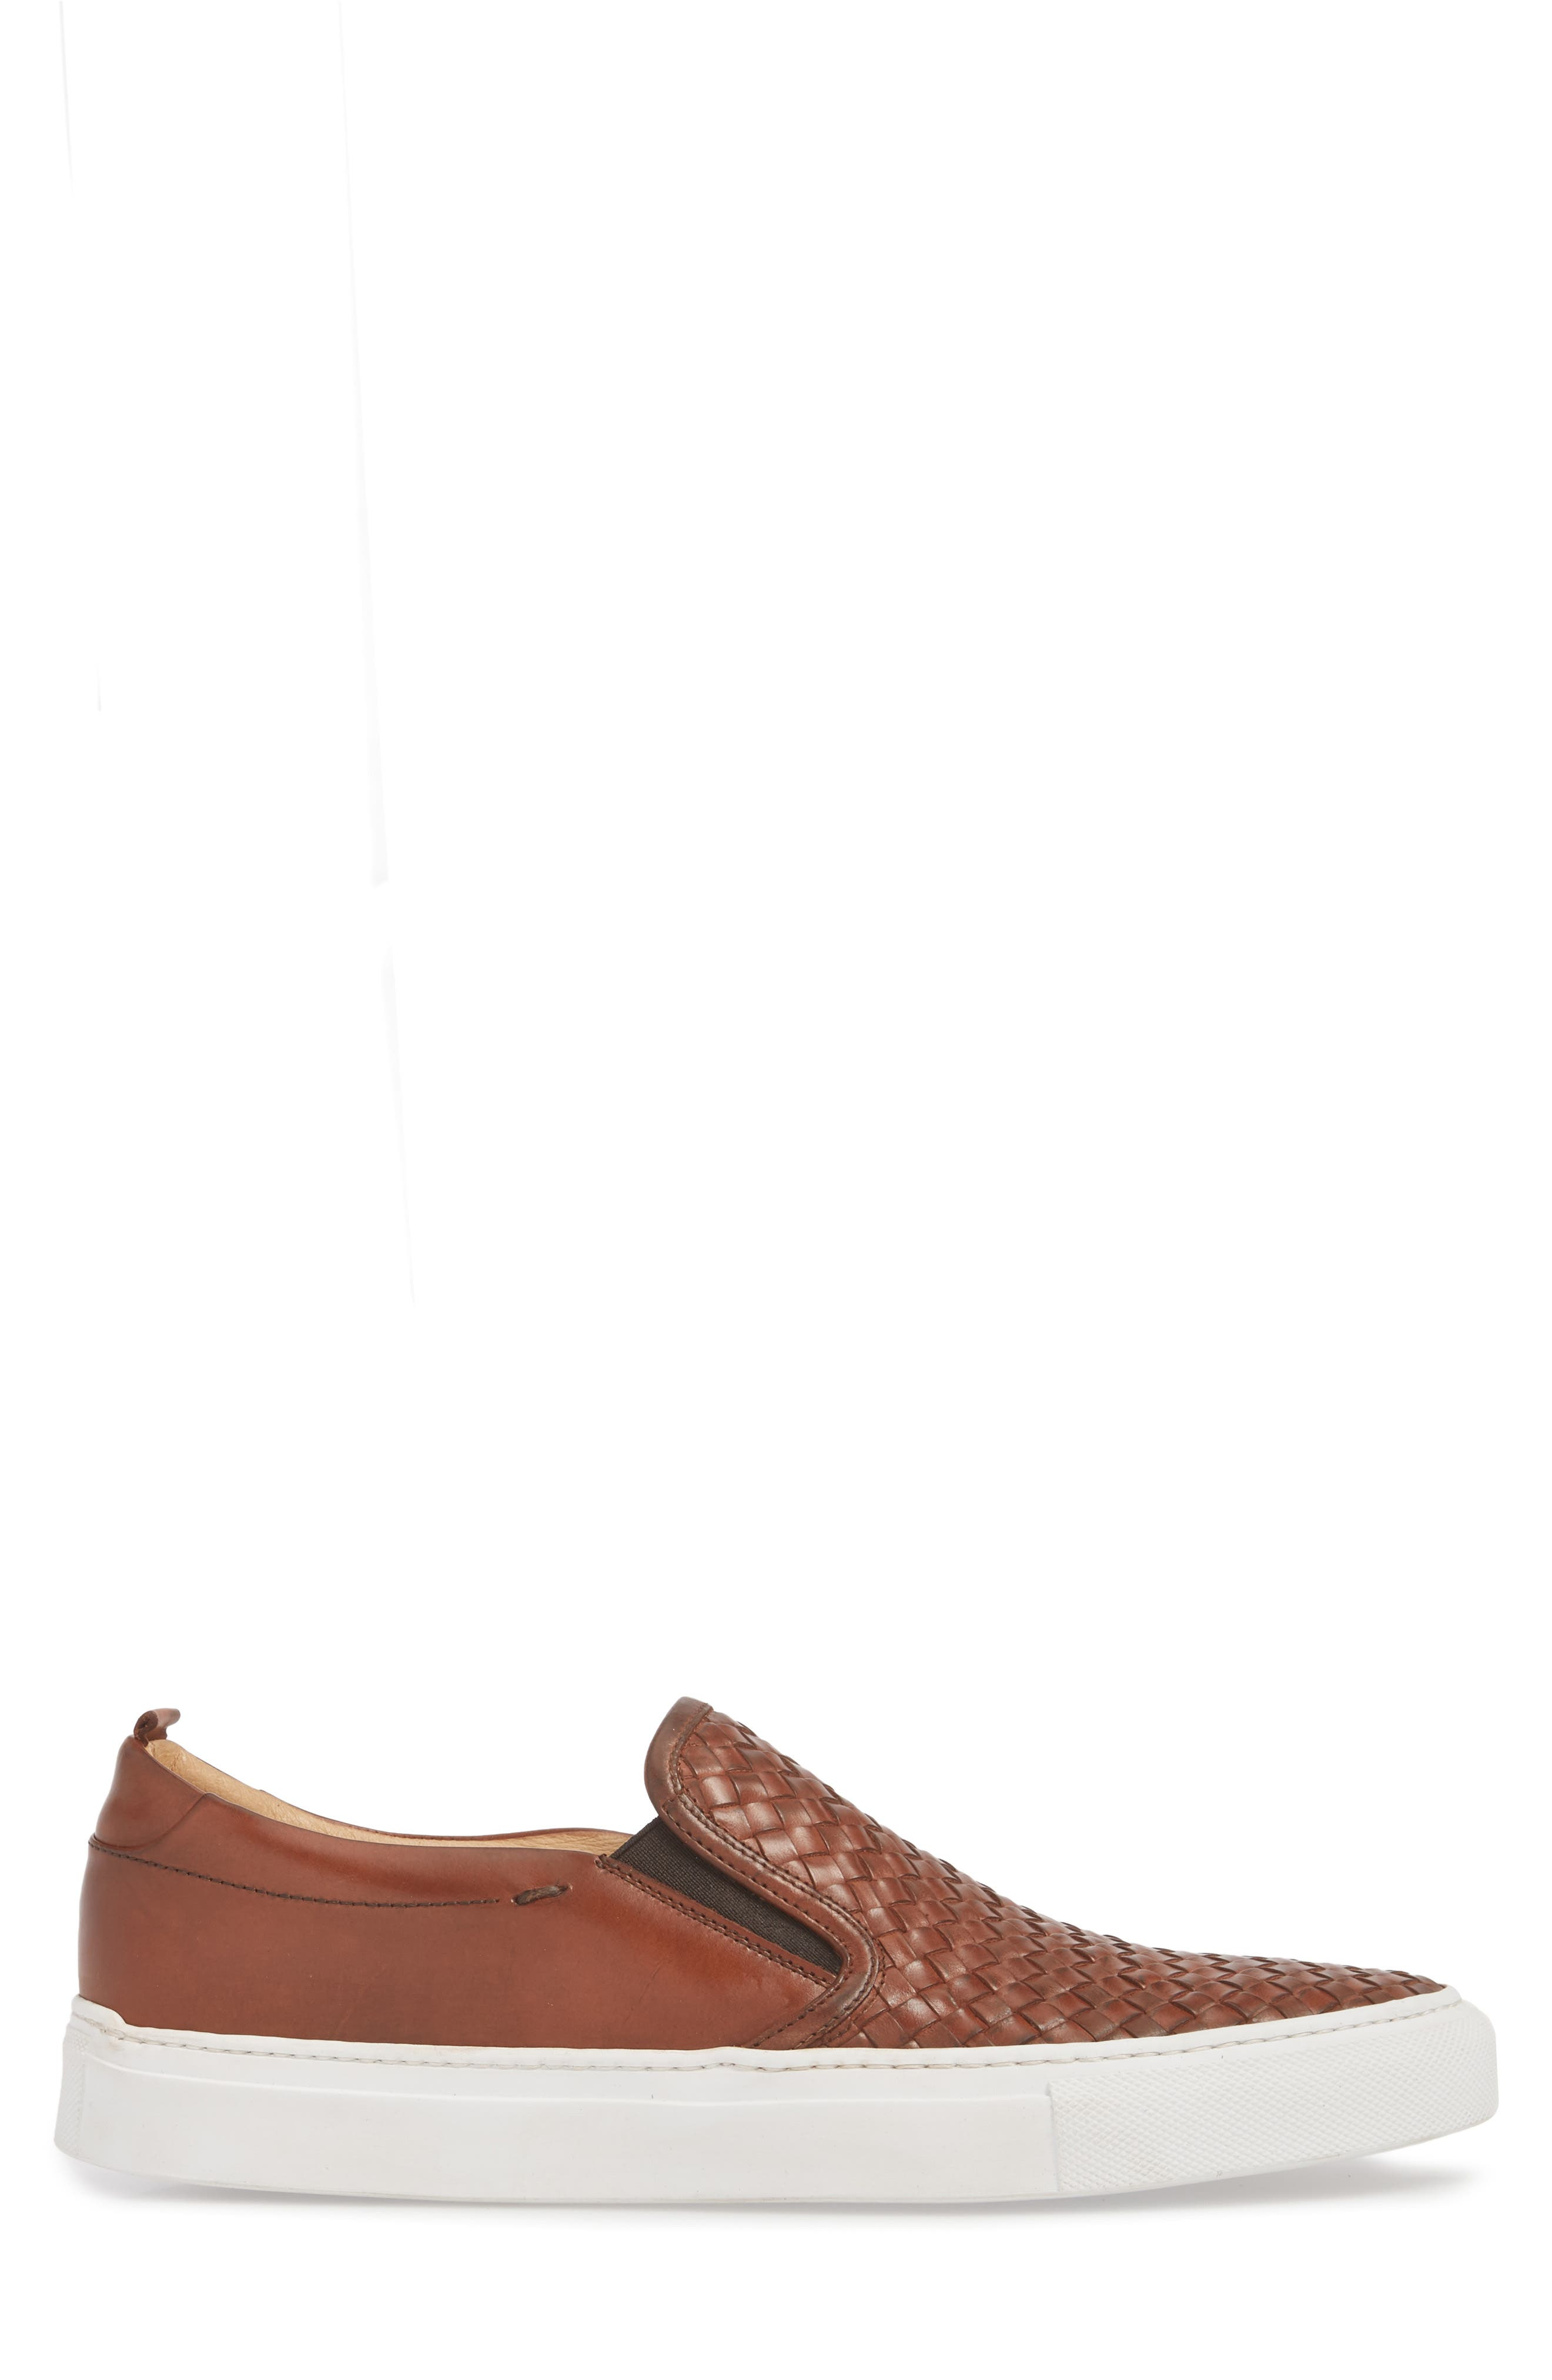 Grifyn Woven Slip-On Sneaker,                             Alternate thumbnail 3, color,                             Cognac Leather